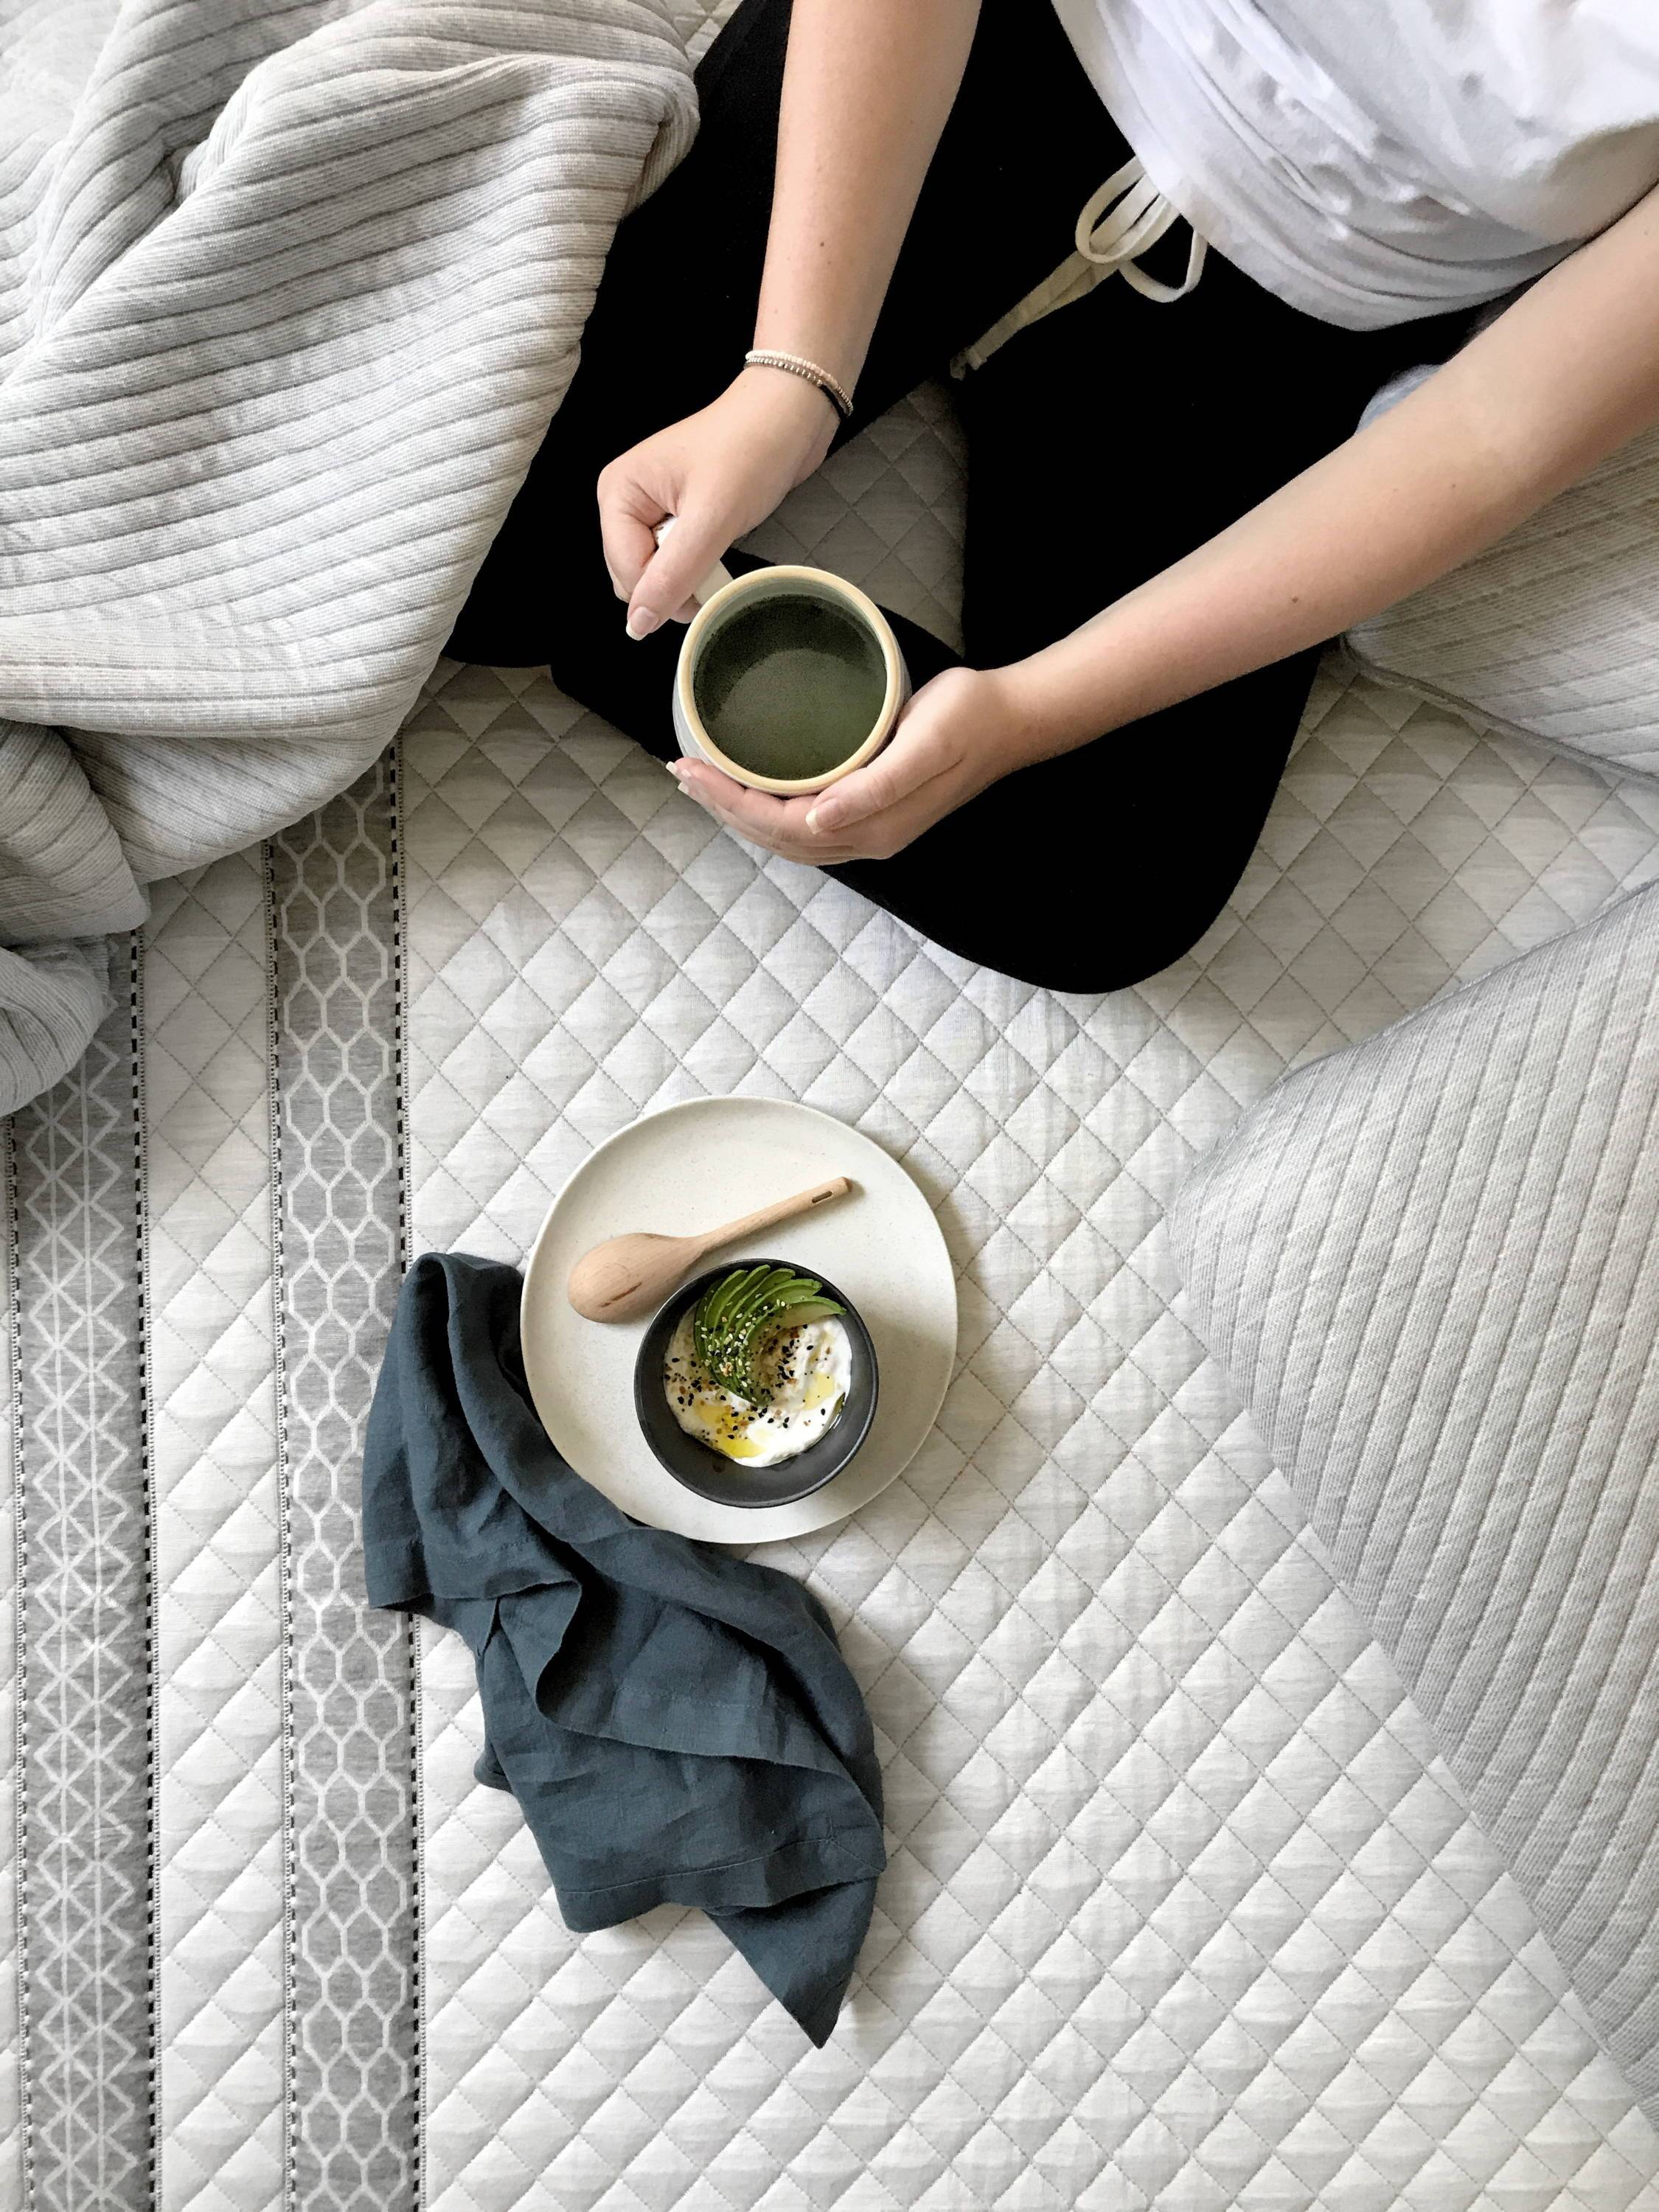 lady_sitting_on_bed_with_coffee_and_a_plate_of_sliced_avocado_and_eggs